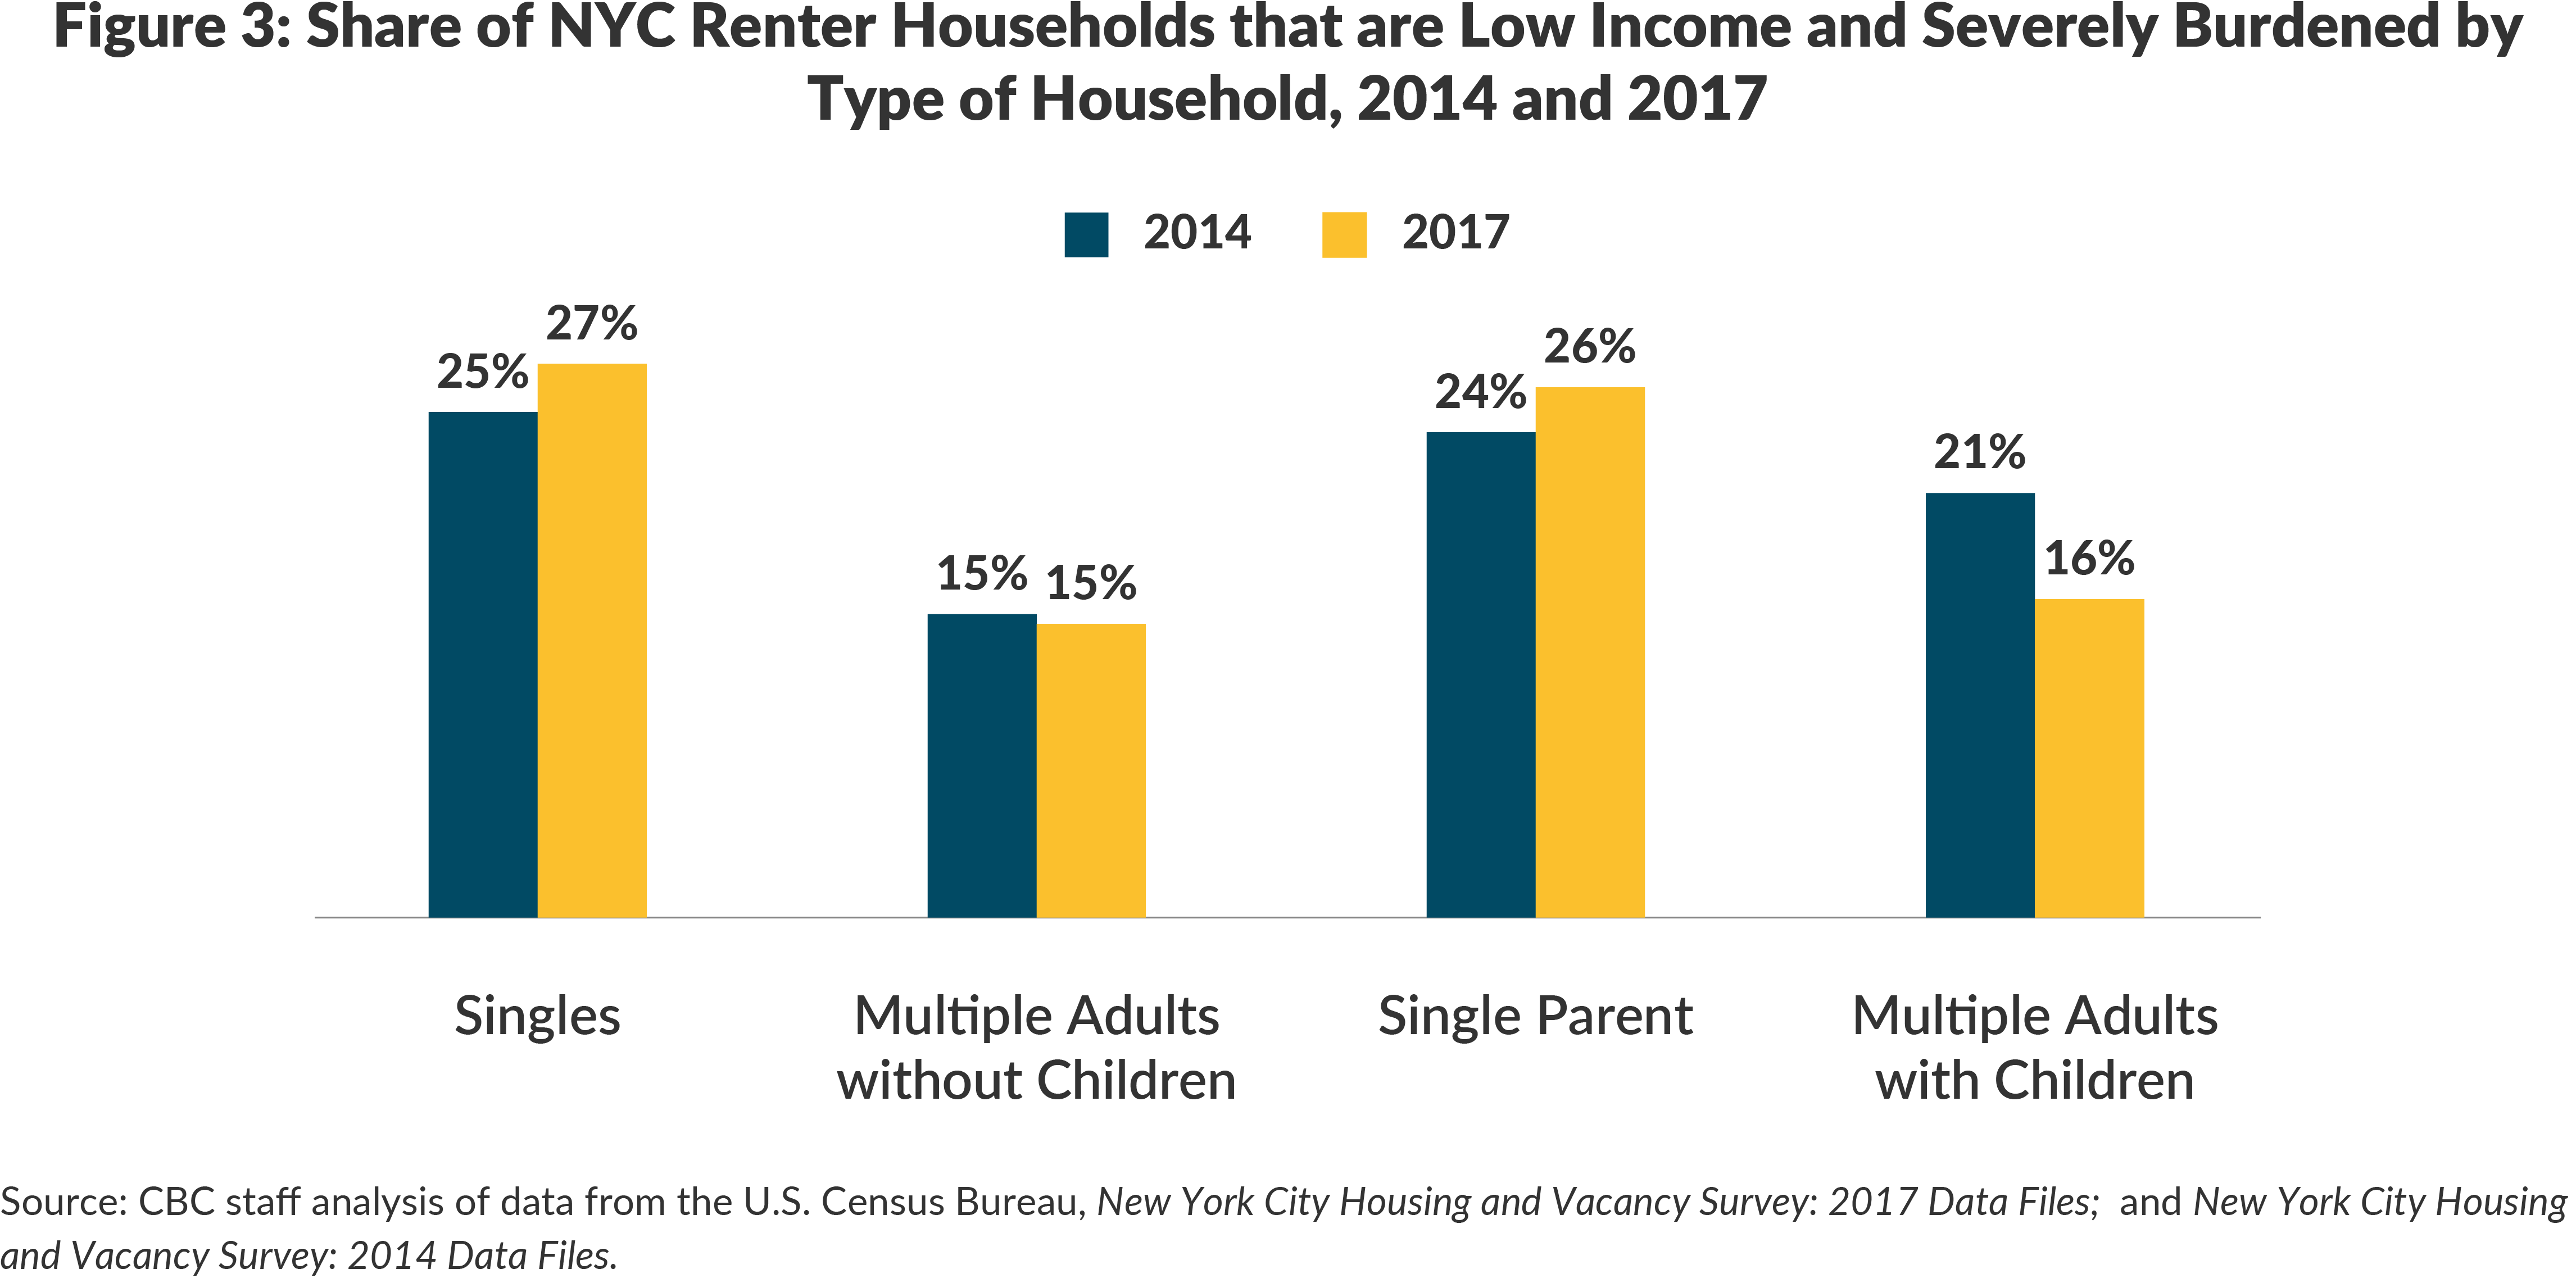 Figure 3. Share of NYC Renter Households that are Low Income and Severely Burdened by Type of Household, 2014 and 2017